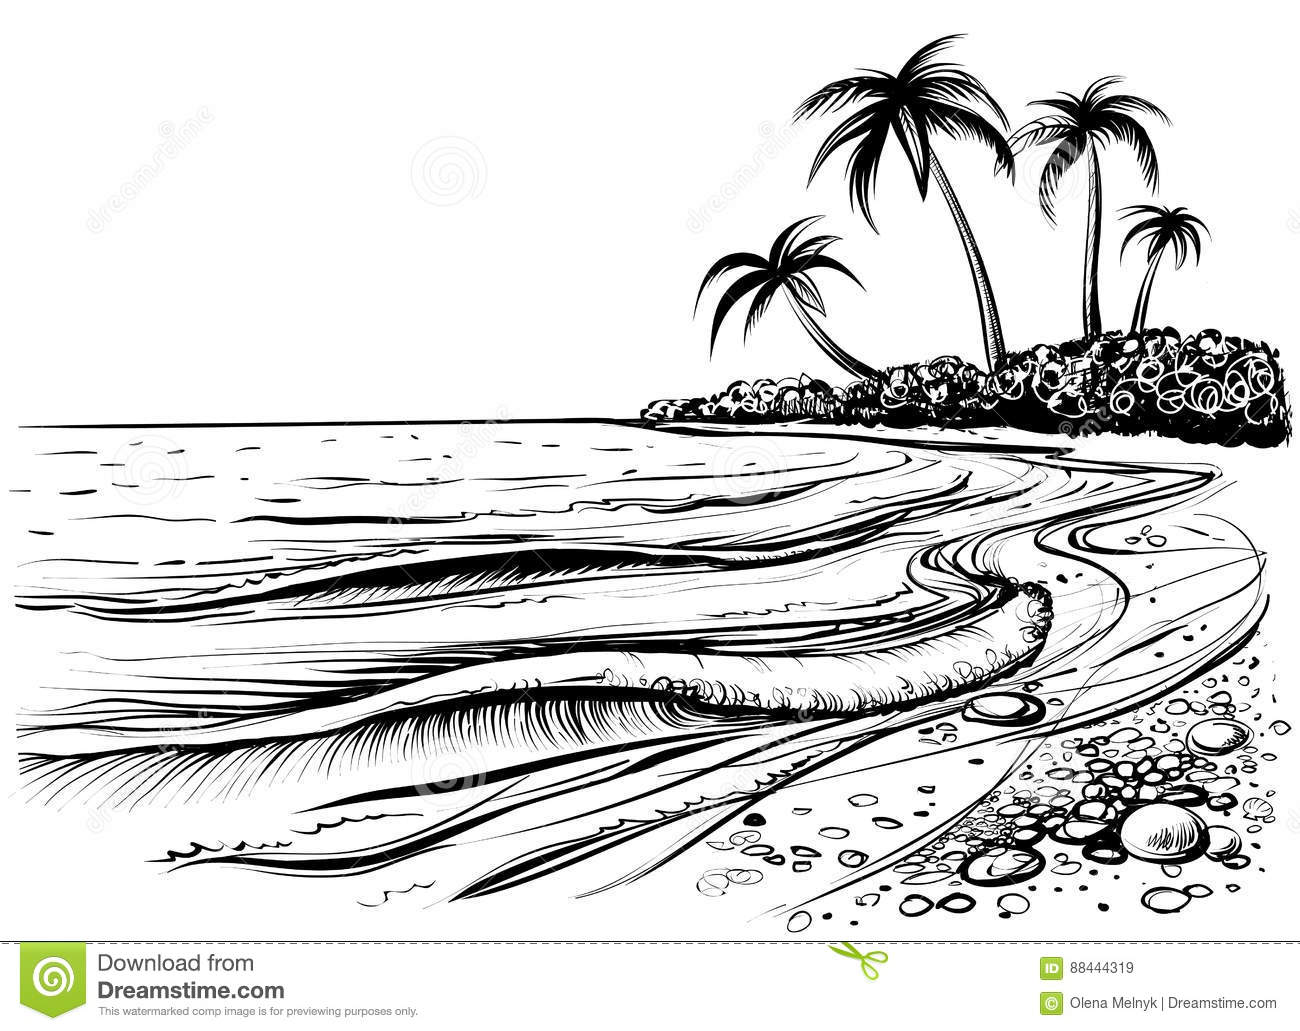 Ocean Or Sea Beach With Palms And Waves Sketch Black And